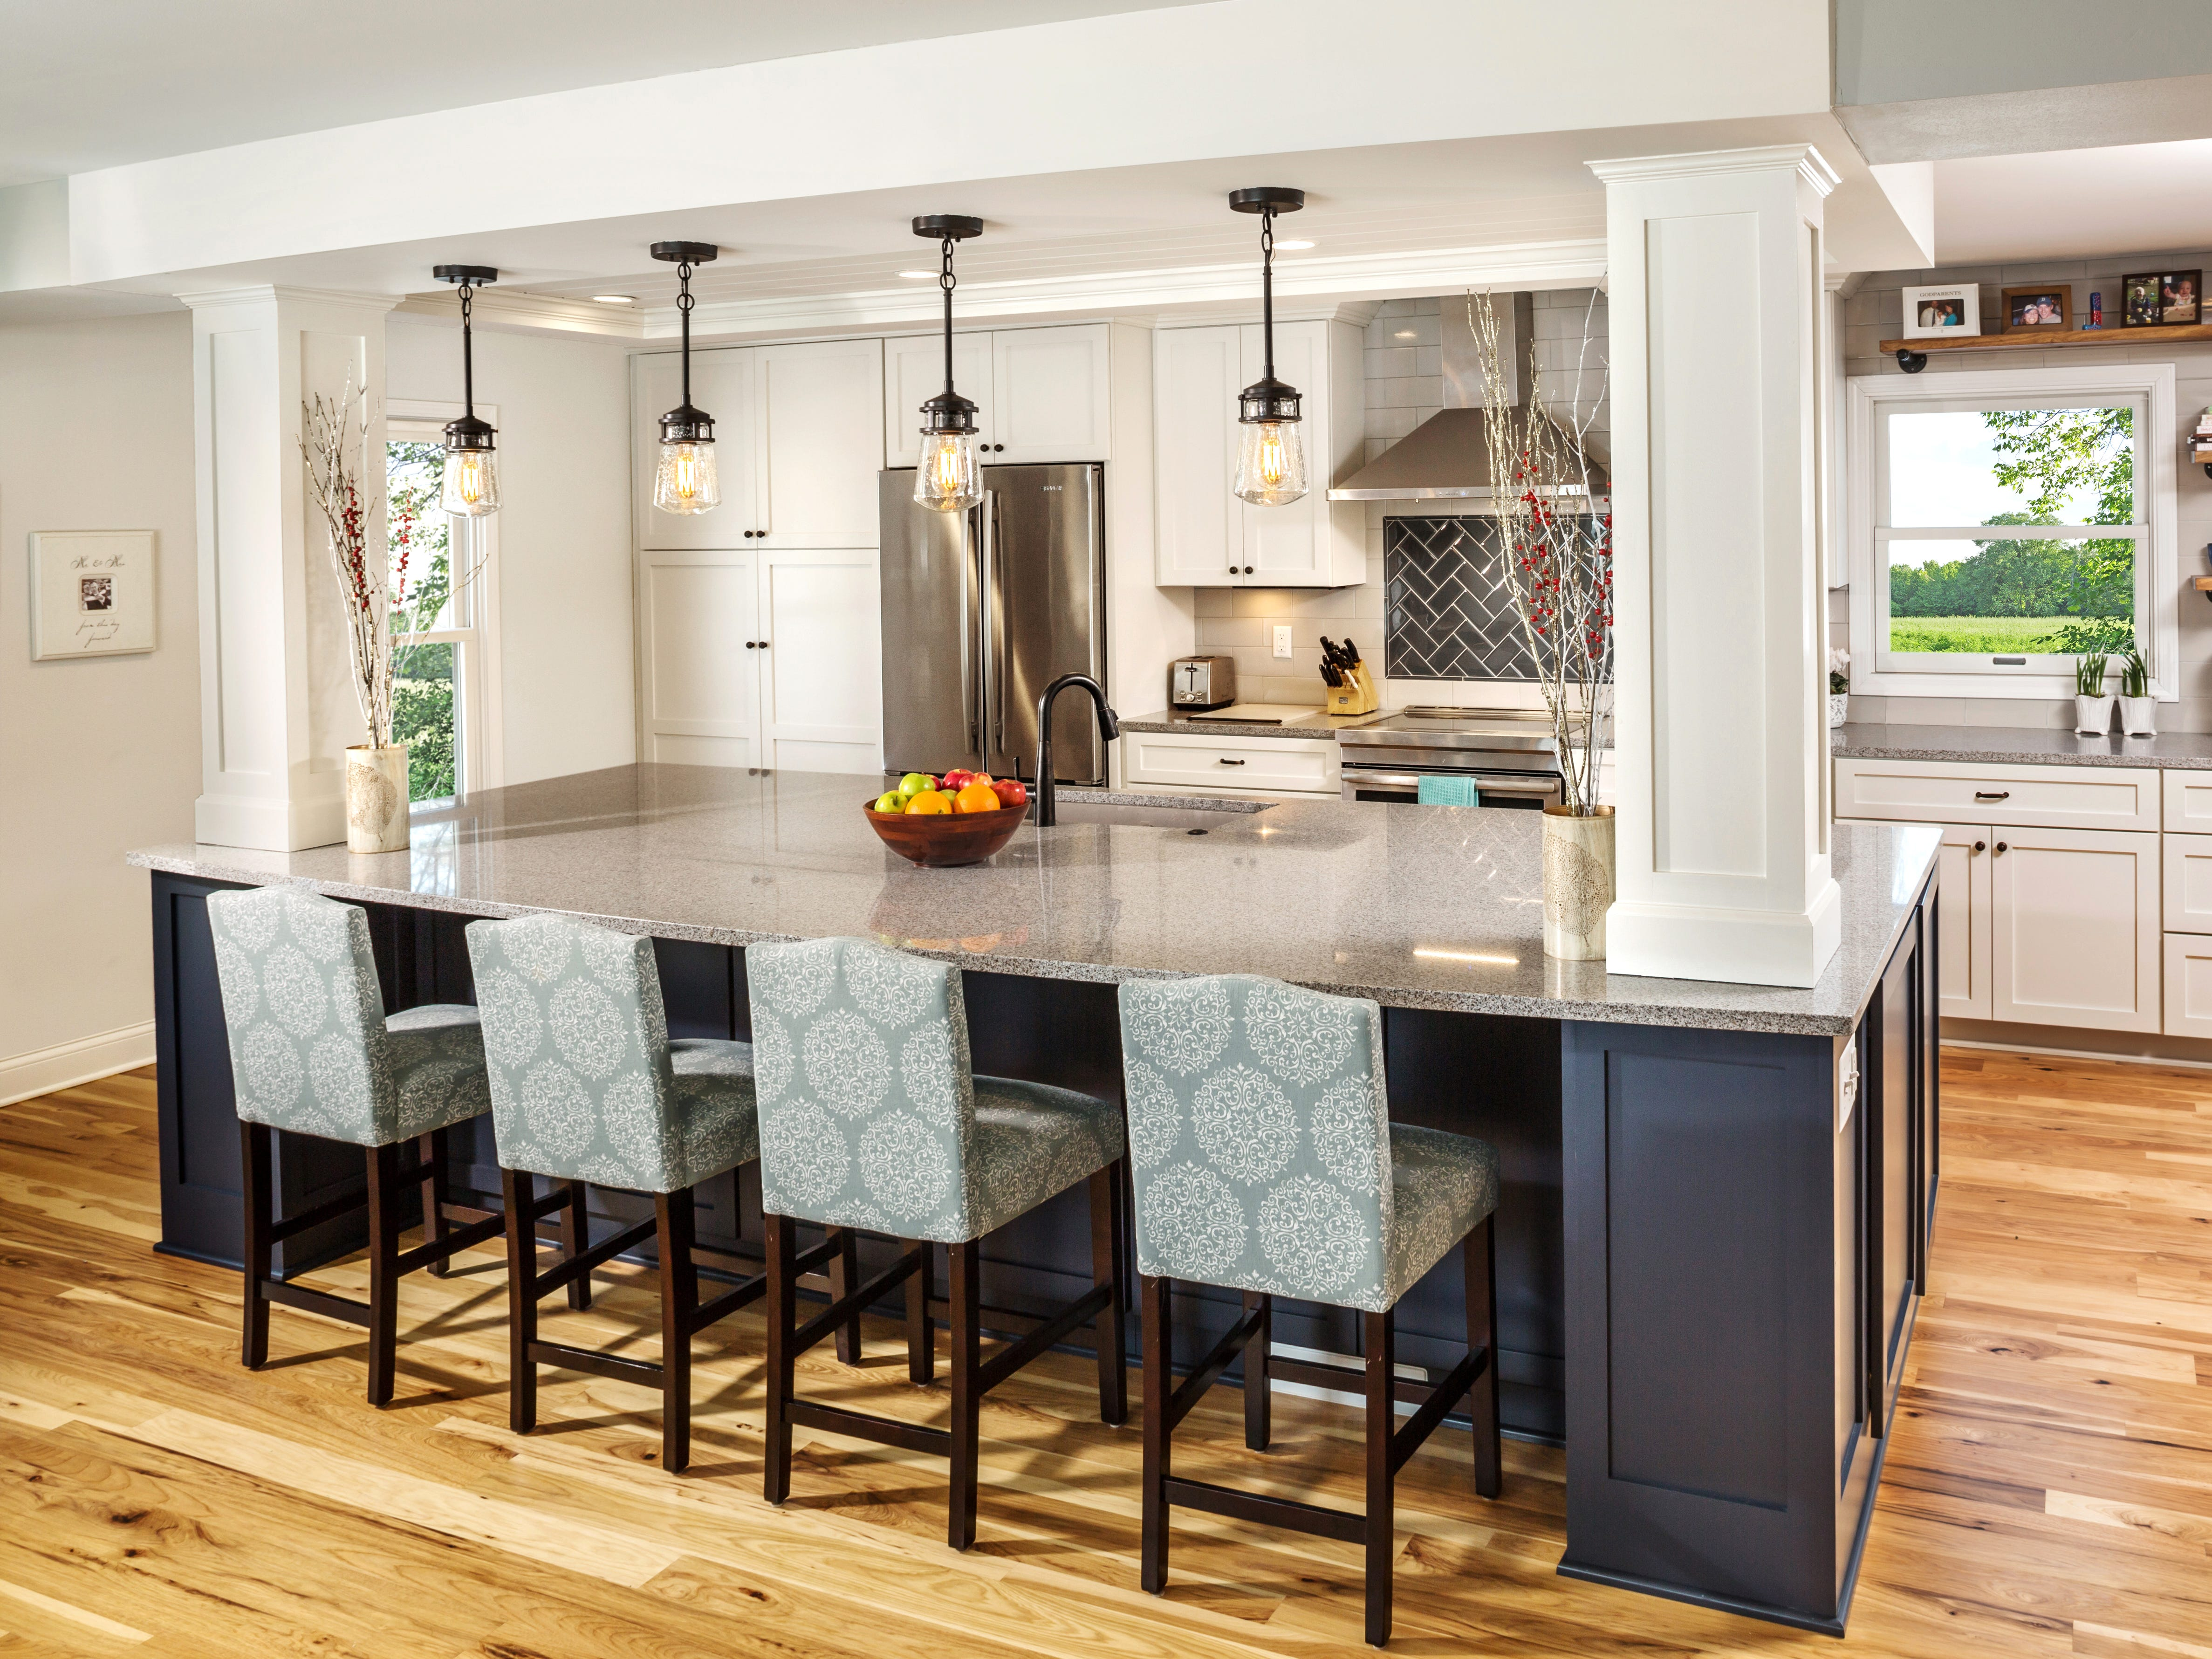 The large 5-by-12-foot island has many functions including storage, food prep and seating, with stools to gather, eat, and keep the guests out of the working area of the kitchen.